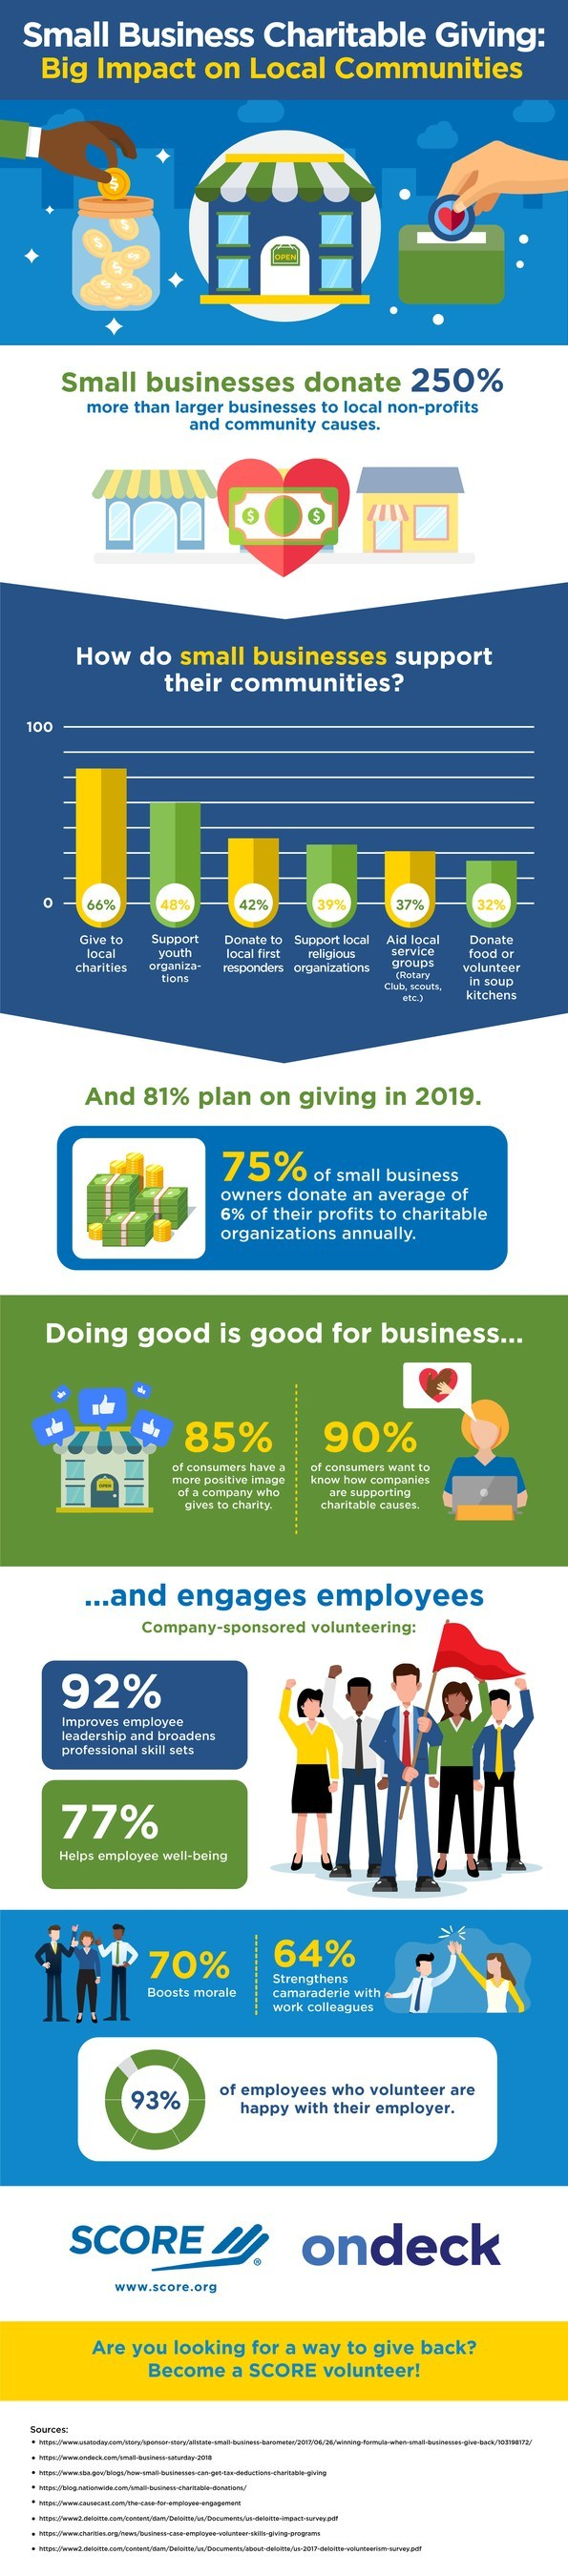 Small businesses donate 250% more than larger businesses to local nonprofits and community causes, according to data compiled by SCORE, the nation's largest network of volunteer, expert business mentors. This trend is predicted to remain strong, with 81% of small businesses planning to continue giving in 2019.